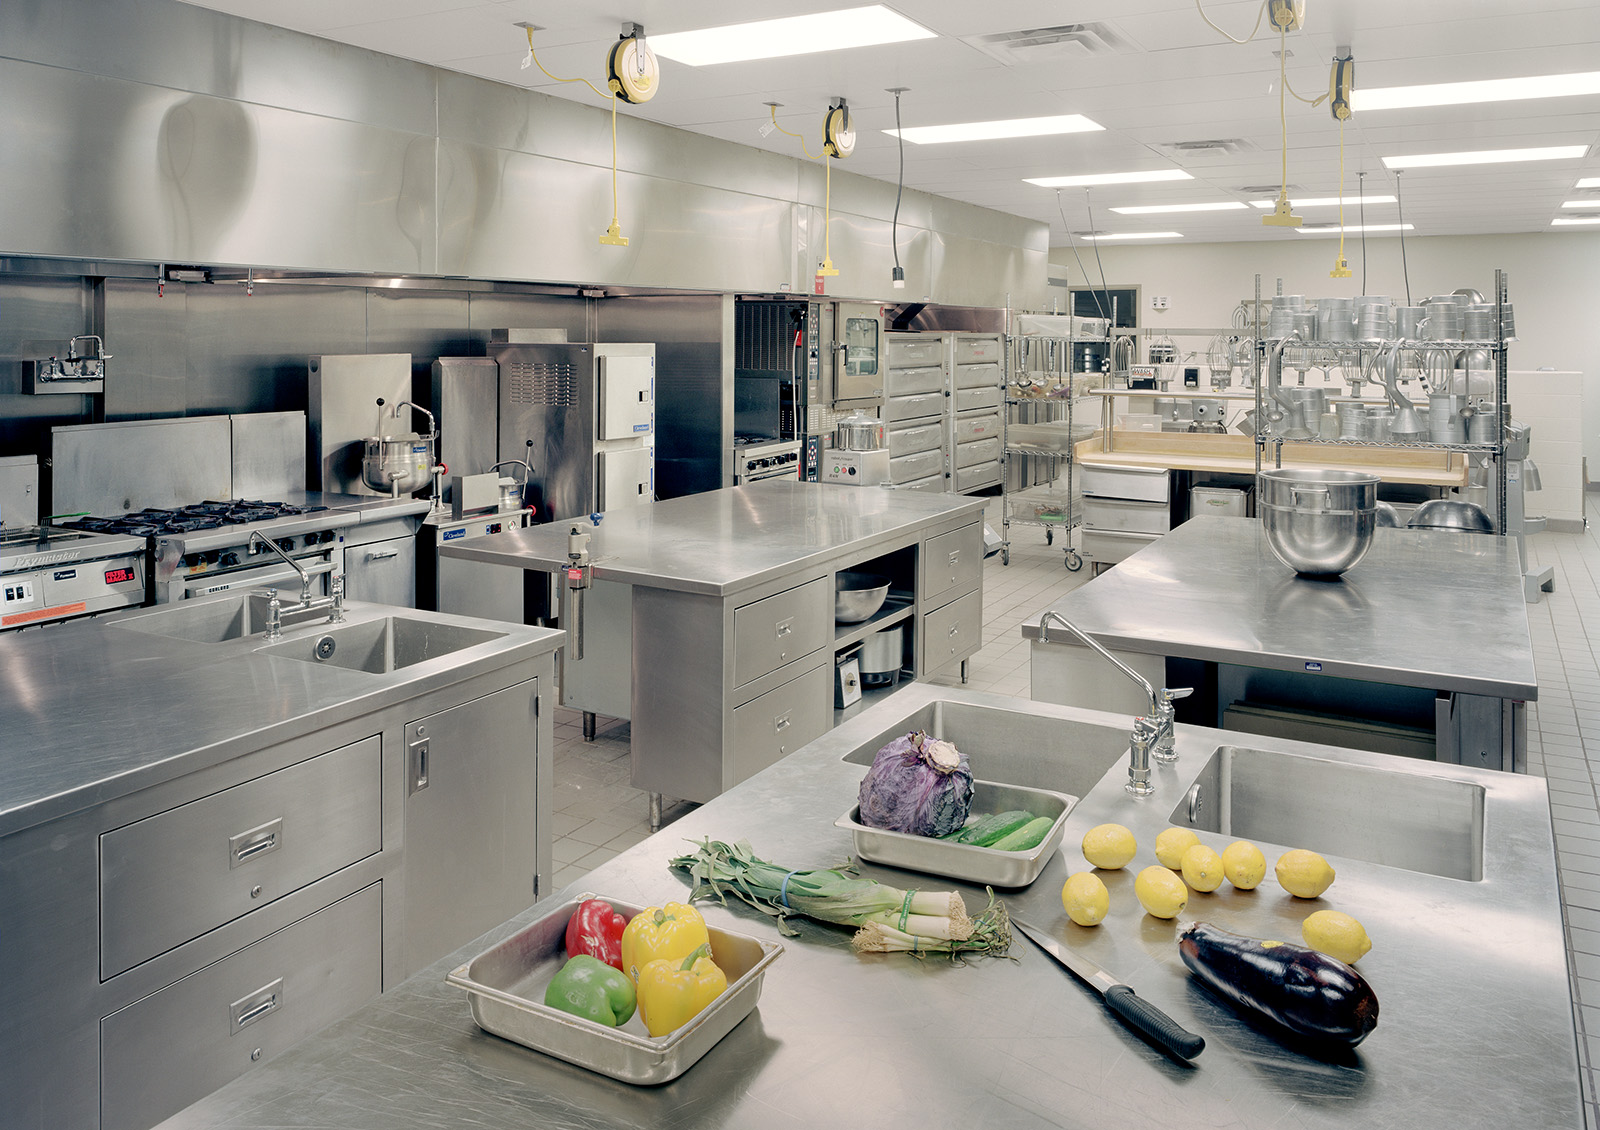 henry-ford-community-college-student-center-kitchen